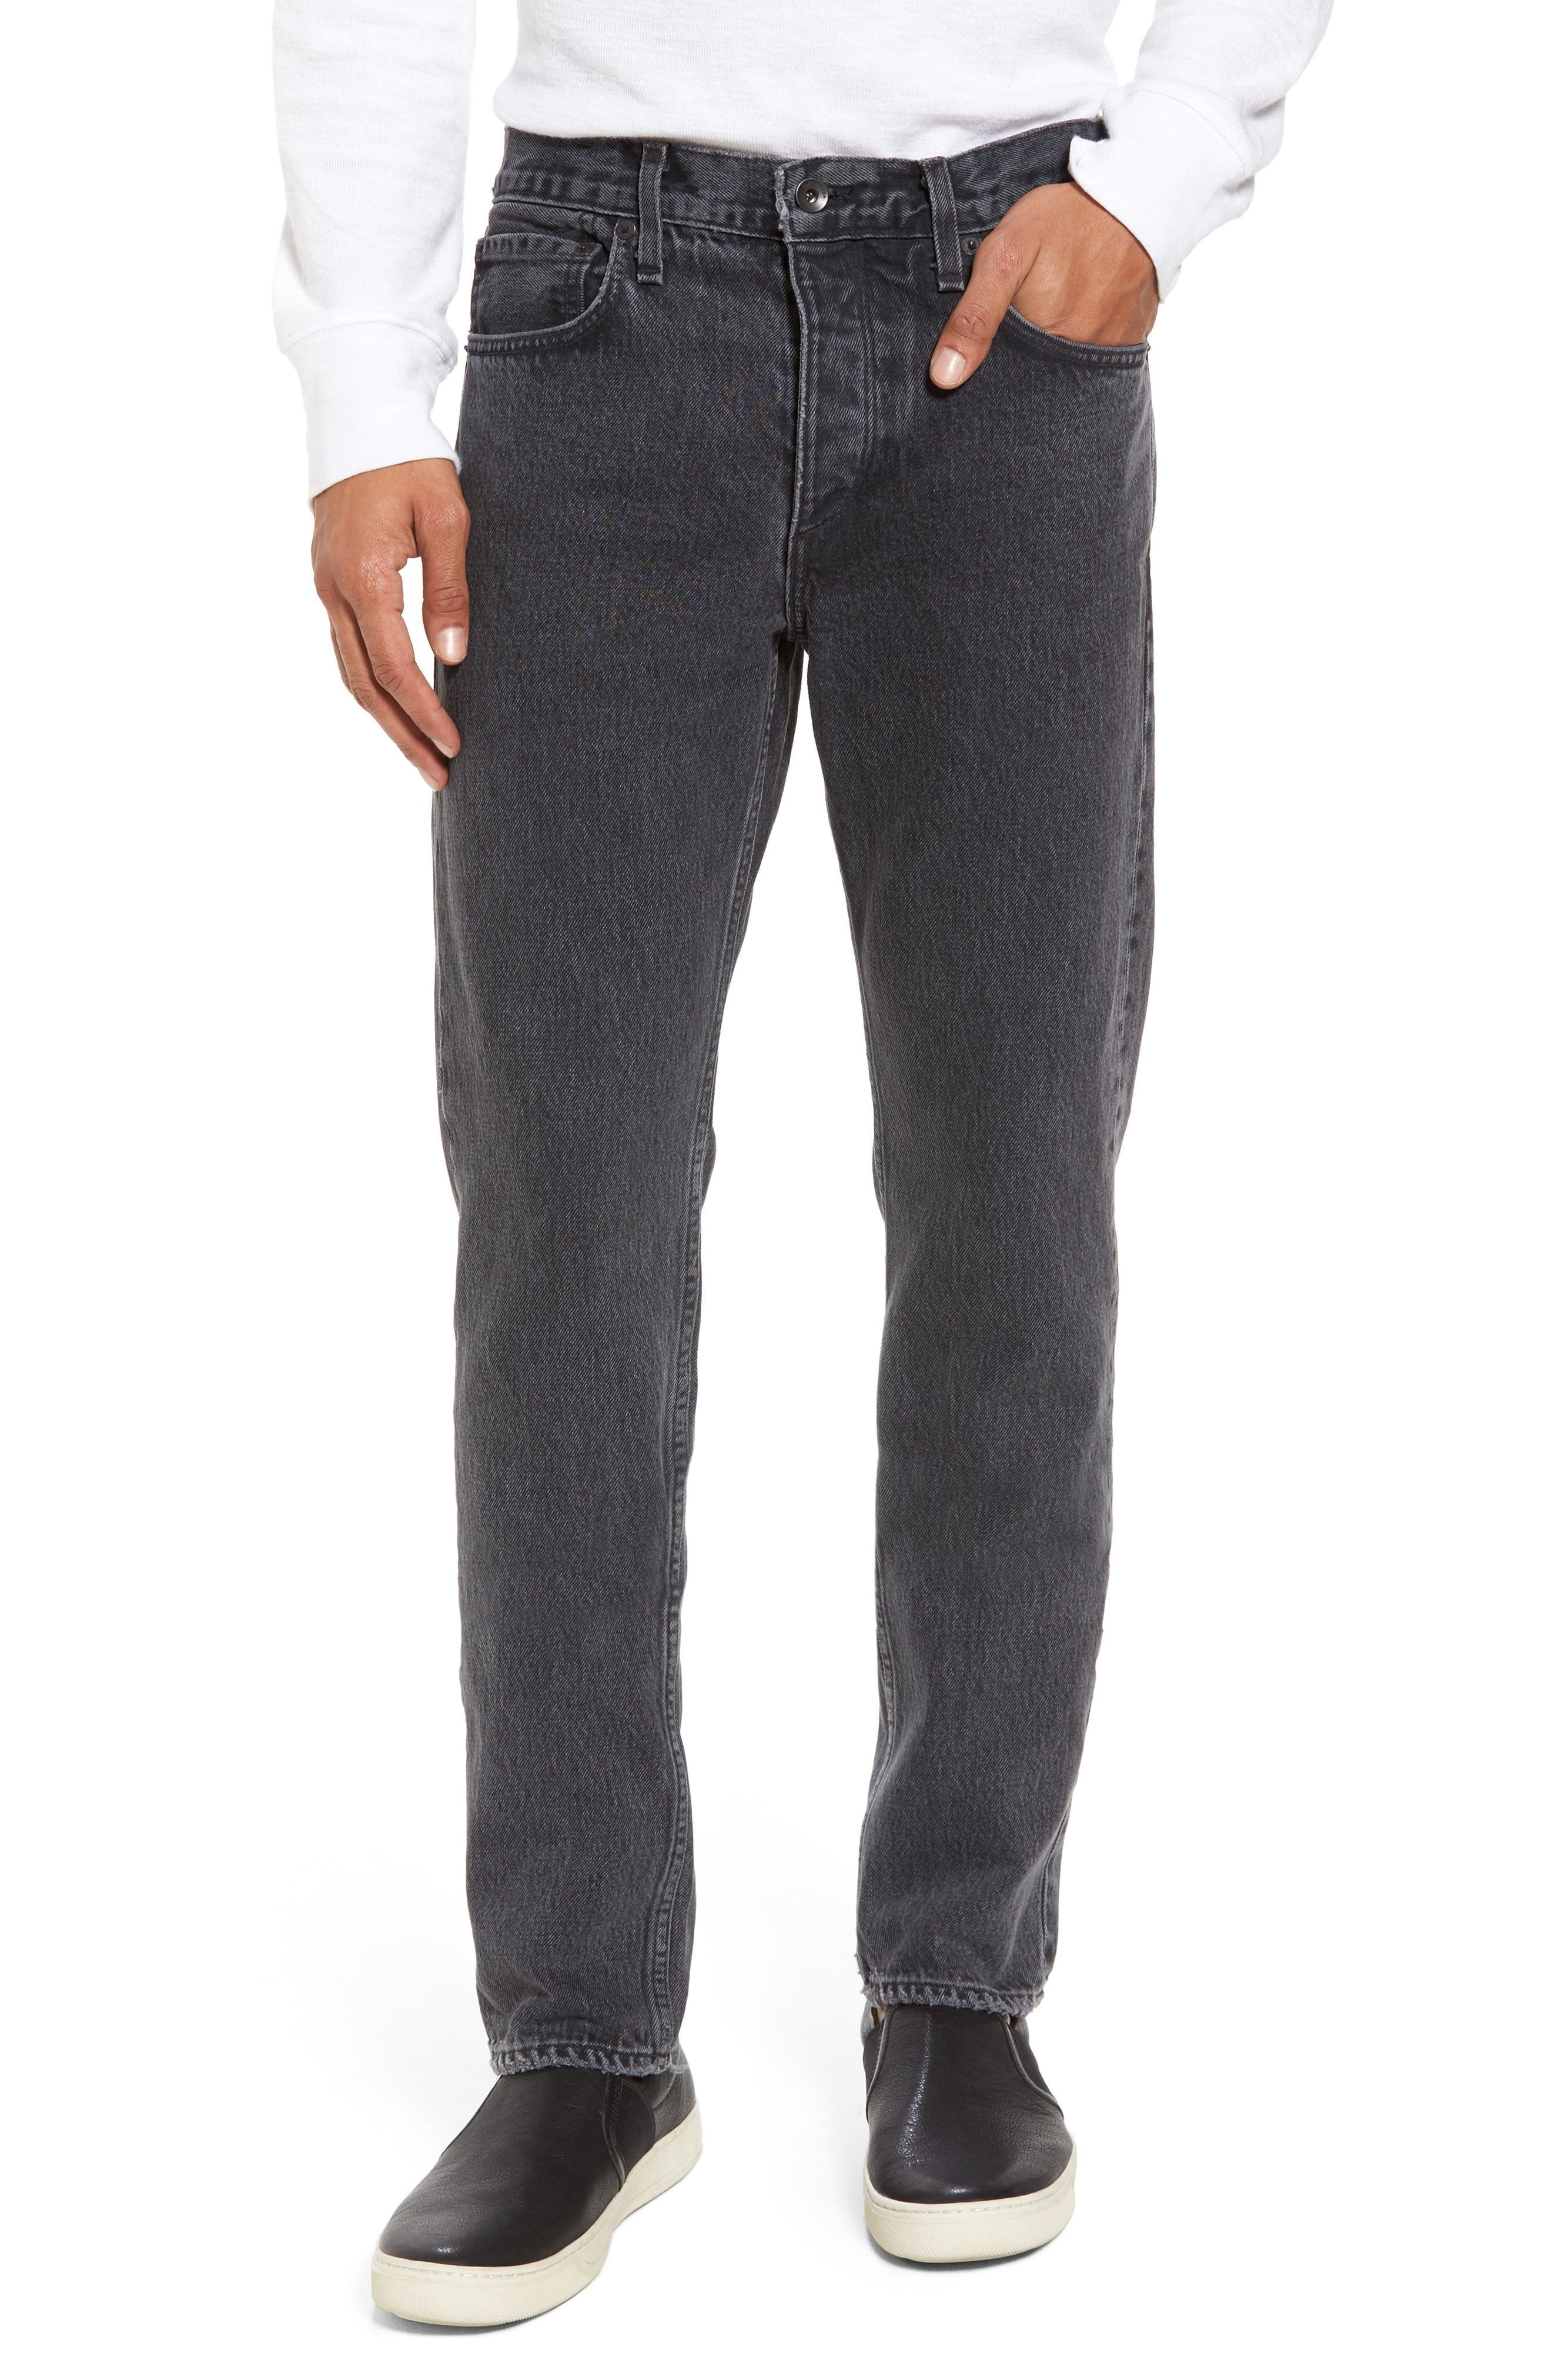 Fit 2 Slim Fit Jeans,                         Main,                         color, Wycoff